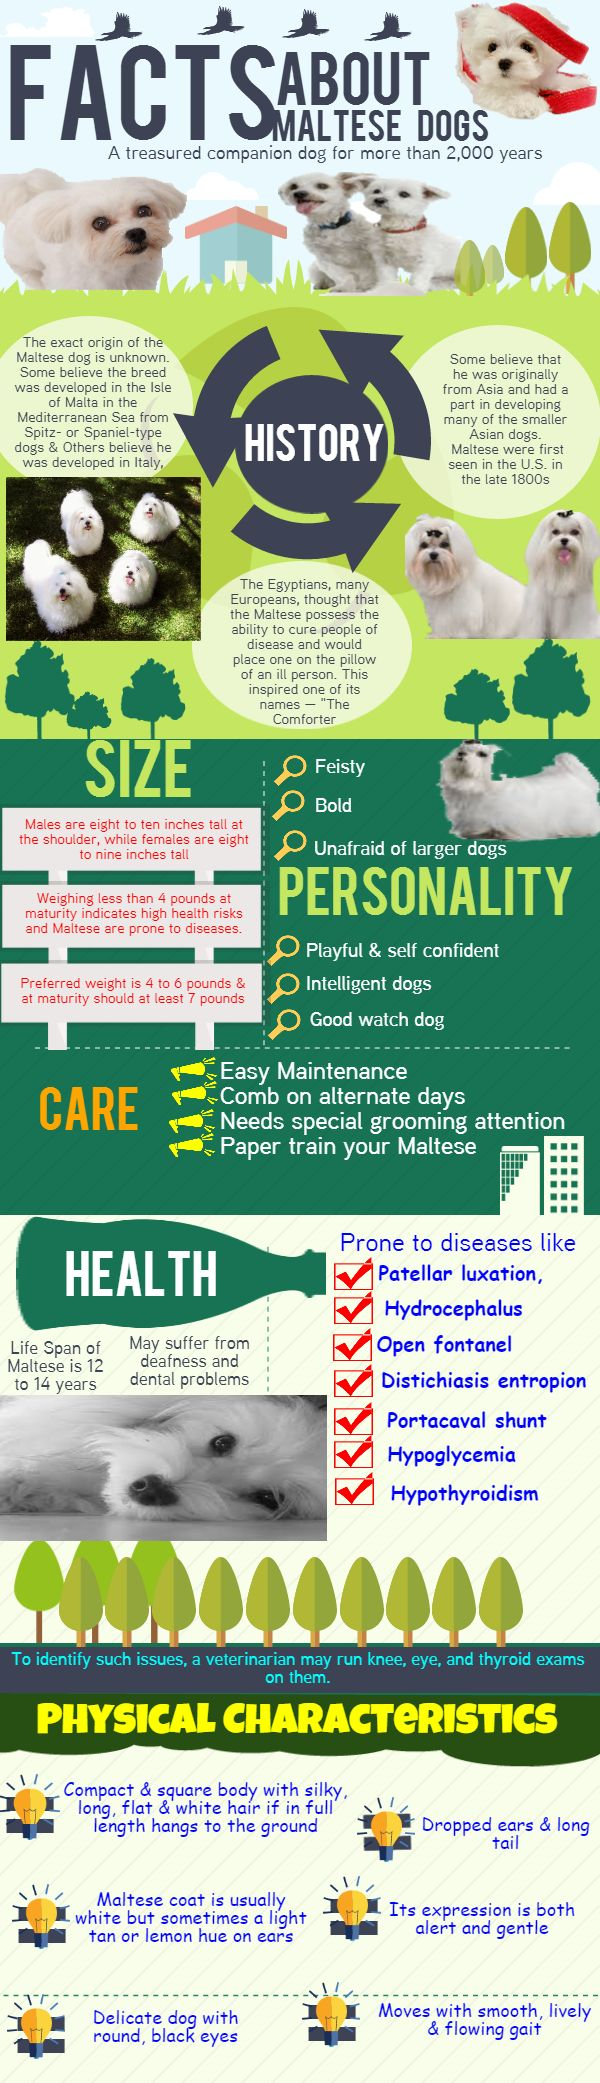 Take a look at this info-graphics to know the details about Maltese Dogs. Everything about this Dog breed you will get to know including size, personality and average life span. The Physical characteristics of Maltese dogs are also available in this info-graphics. You can also able to know about the possible diseases in Maltese dogs and how to care your Maltese dog. More